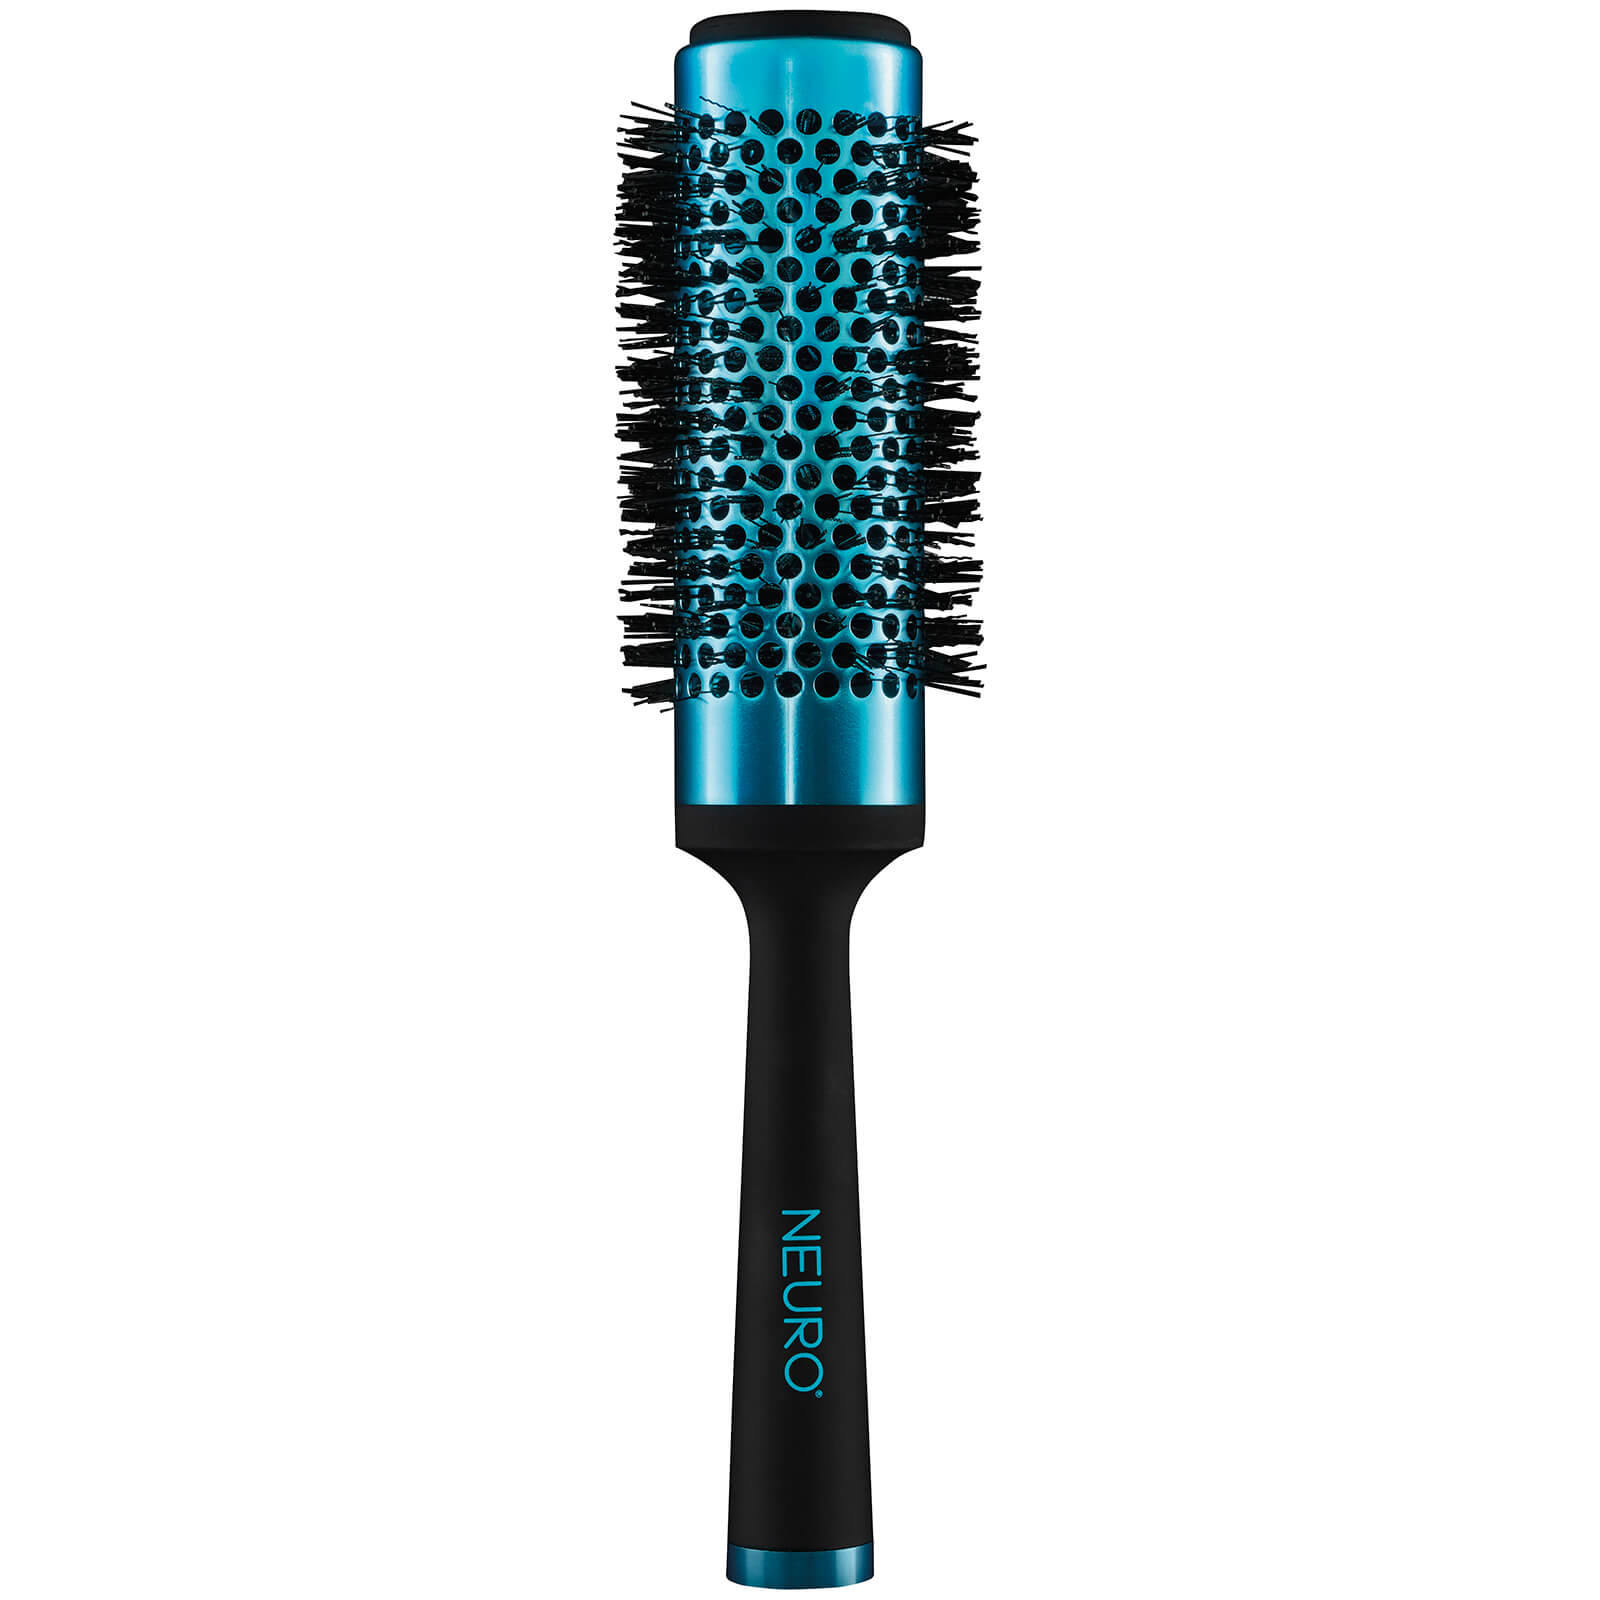 Paul Mitchell Neuro Round Titanium Thermal Brush - Medium